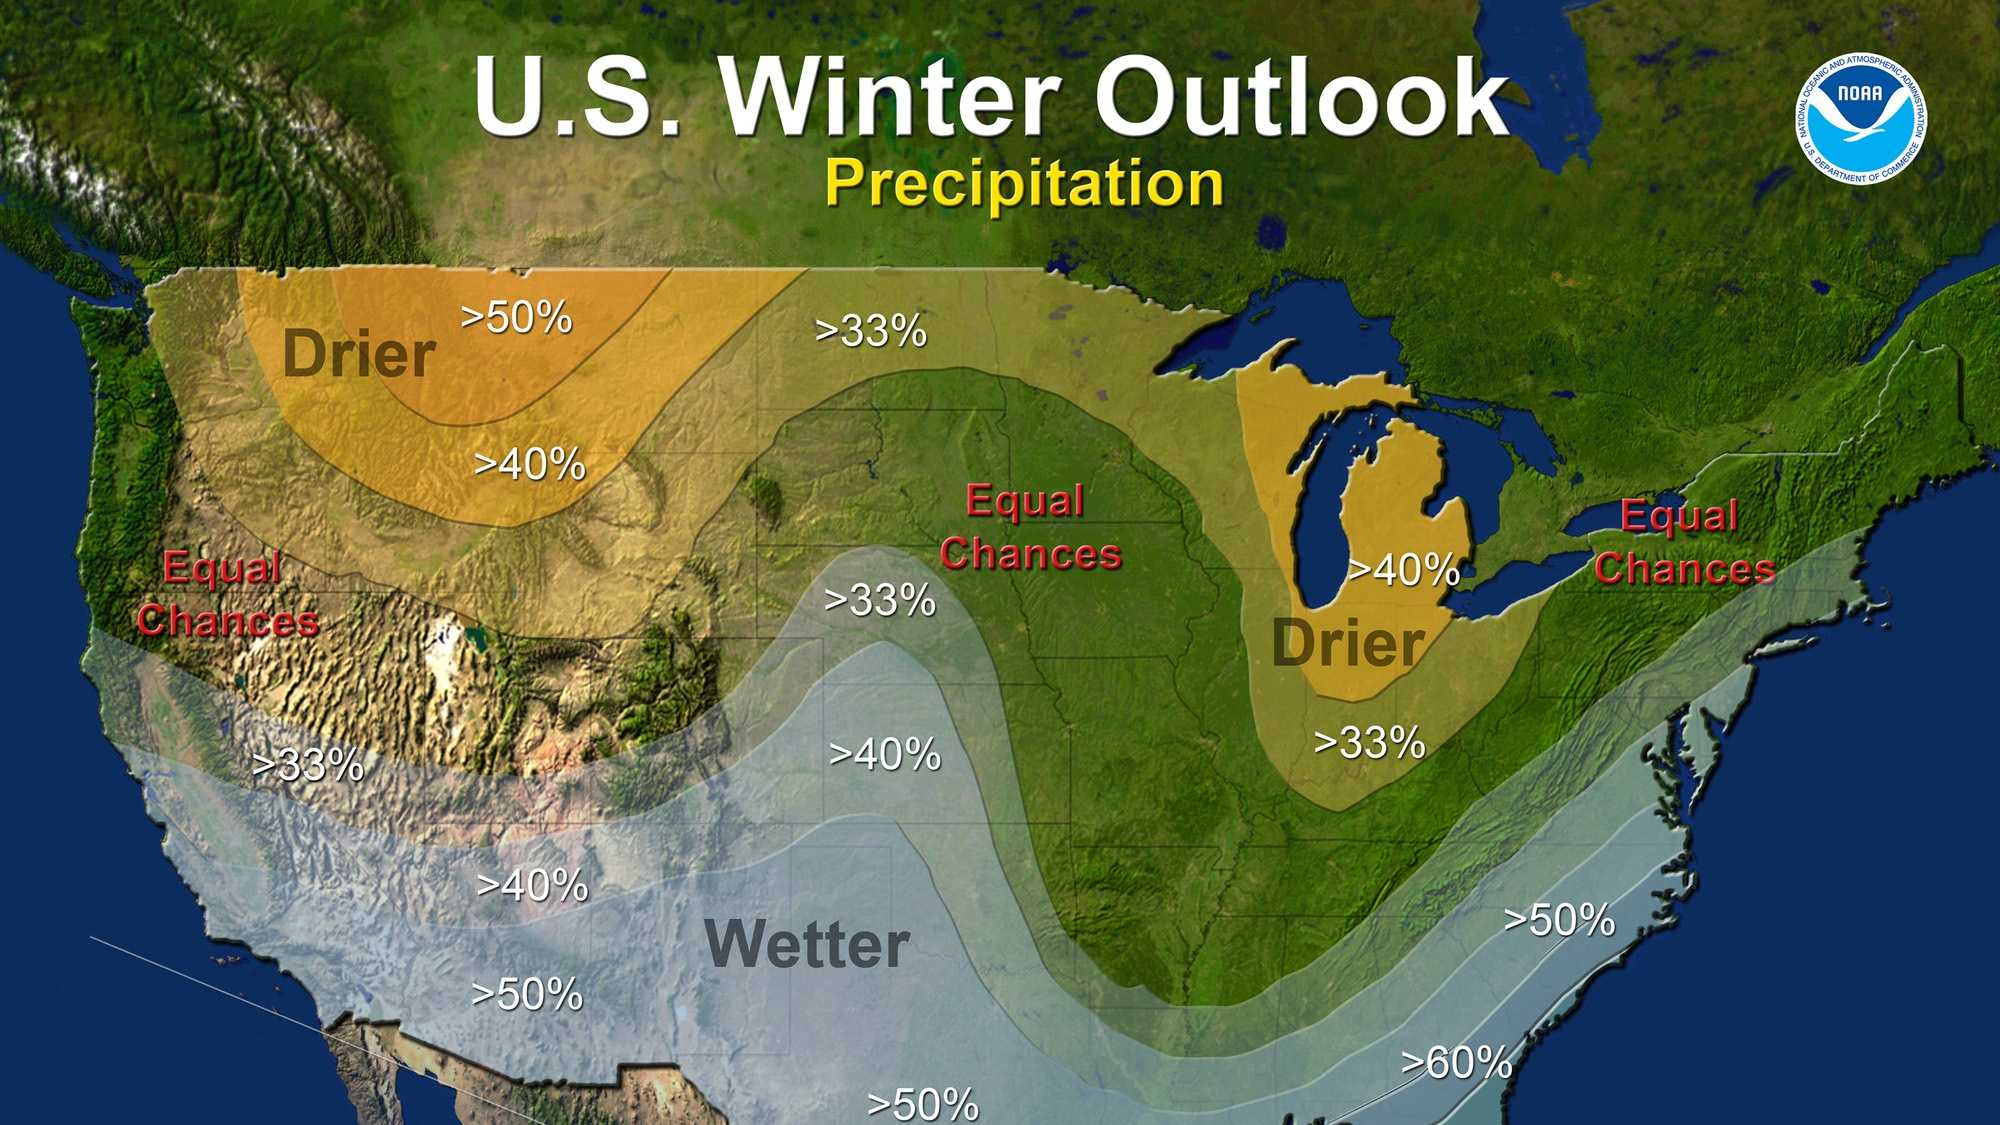 National Oceanic and Atmospheric Administration's outlook for winter released on Thursday, Oct. 15, 2015.